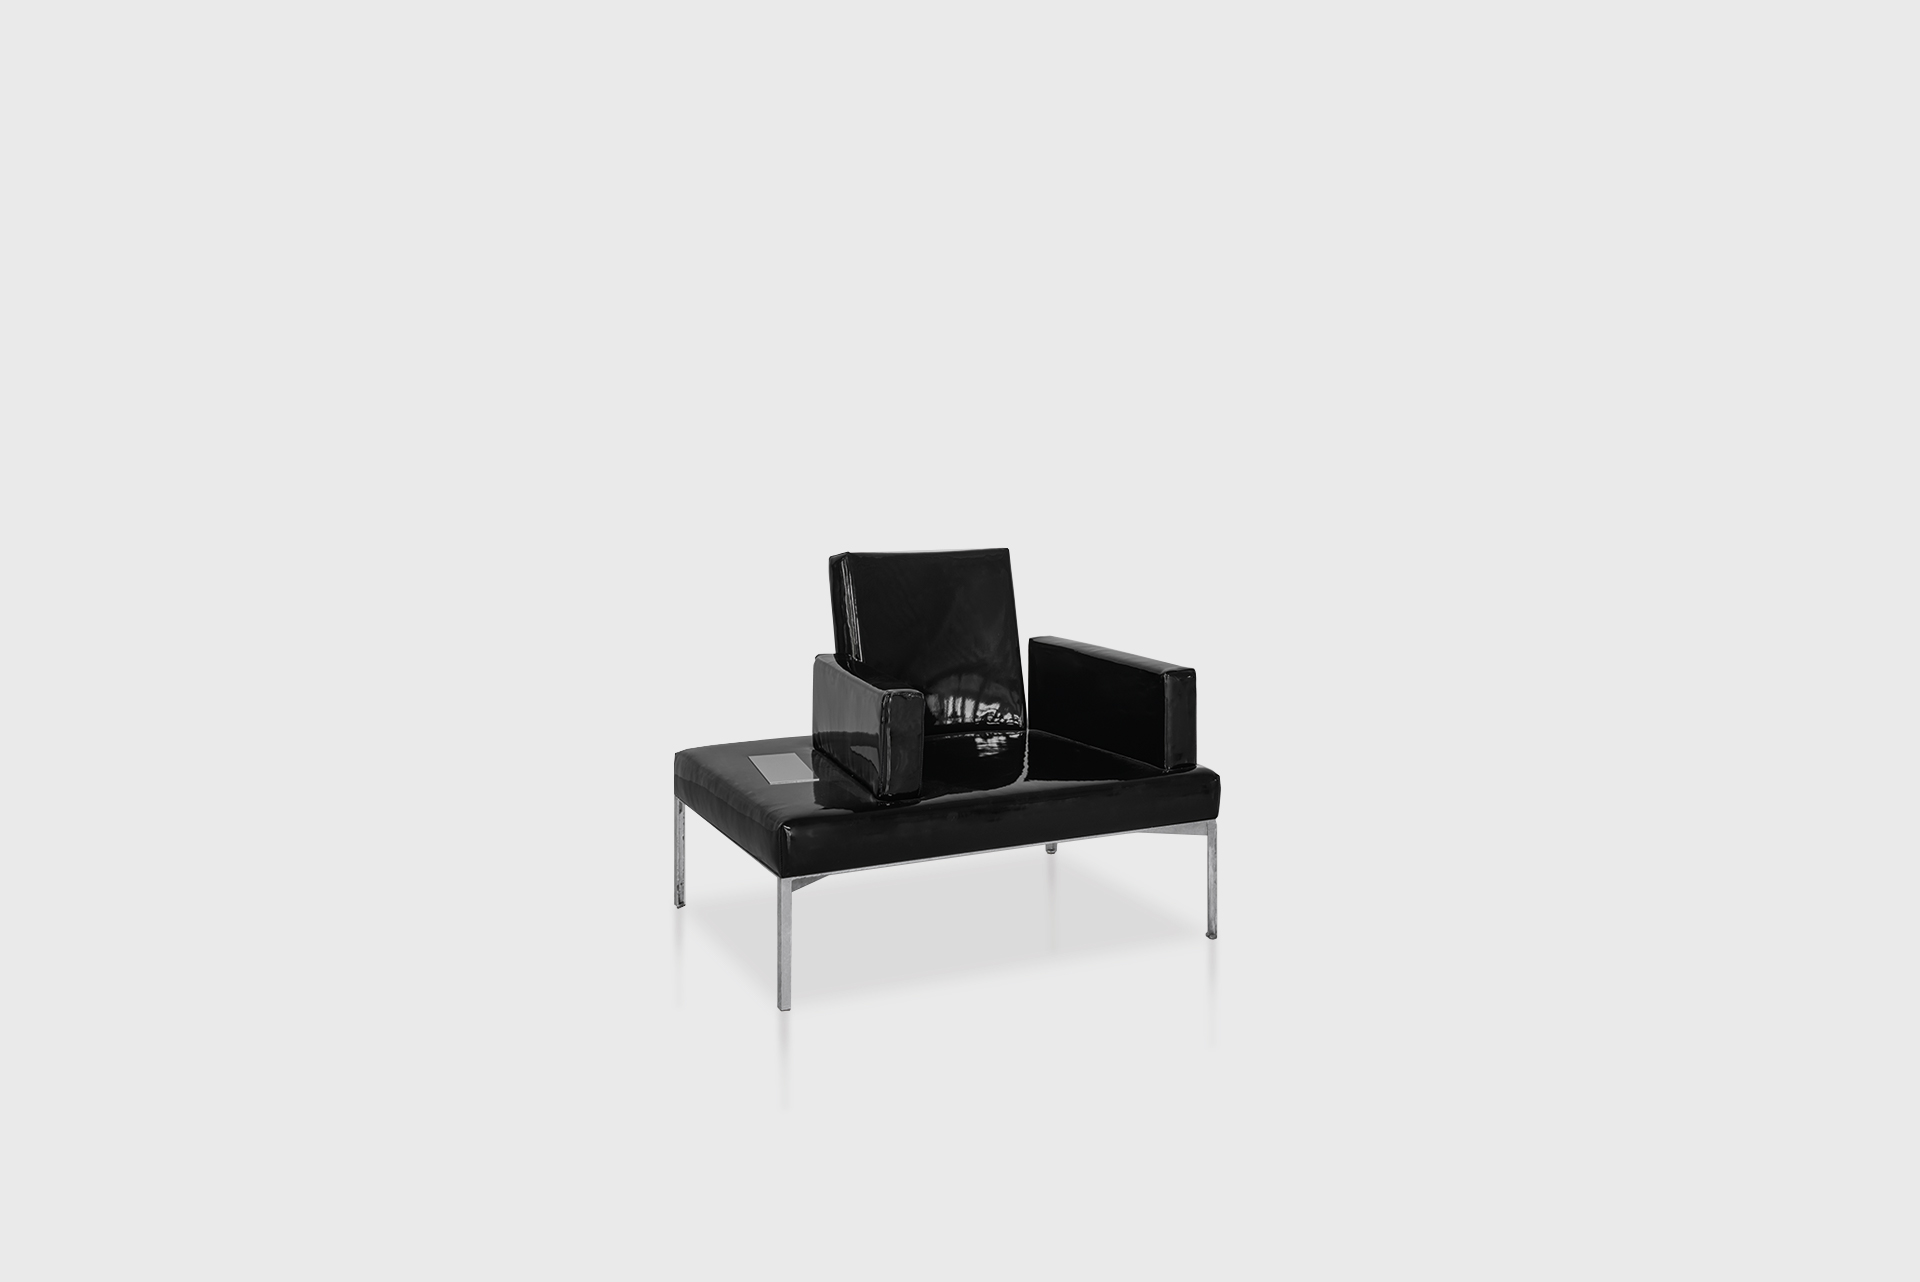 """Club Chair From the series """"Beasts"""" Produced in exclusive for SIDE GALLERY Manufactured by ERTL und ZULL Berlin, 2021 Galvanized steel, black vinyl upholstery"""